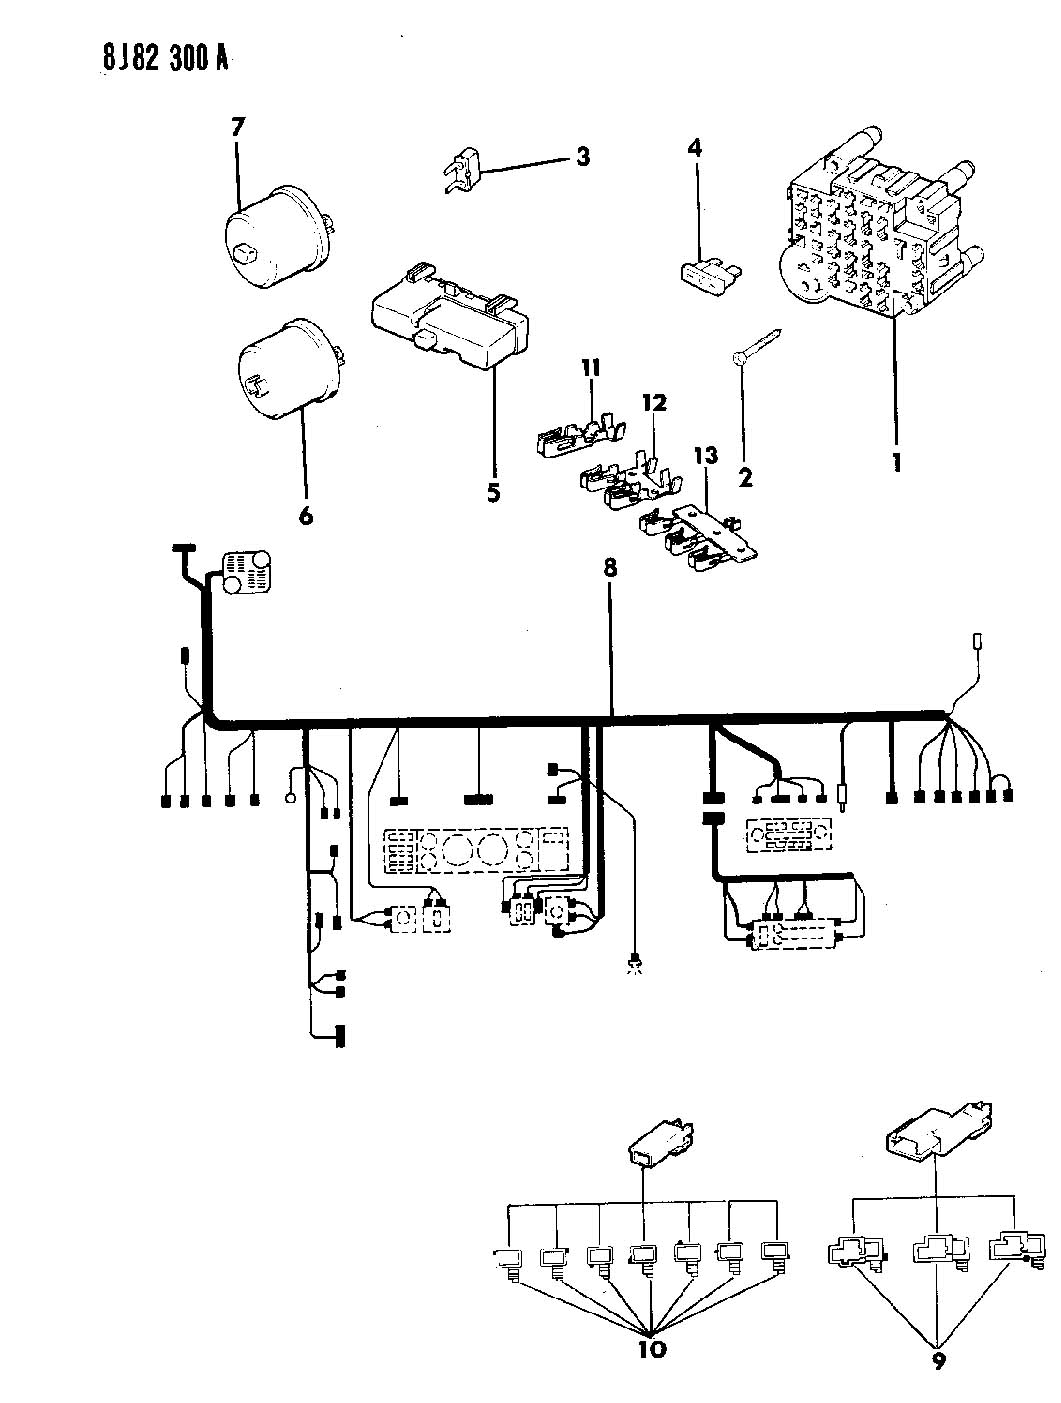 addition 95 jeep wrangler wiring diagram additionally jeep wrangler yj